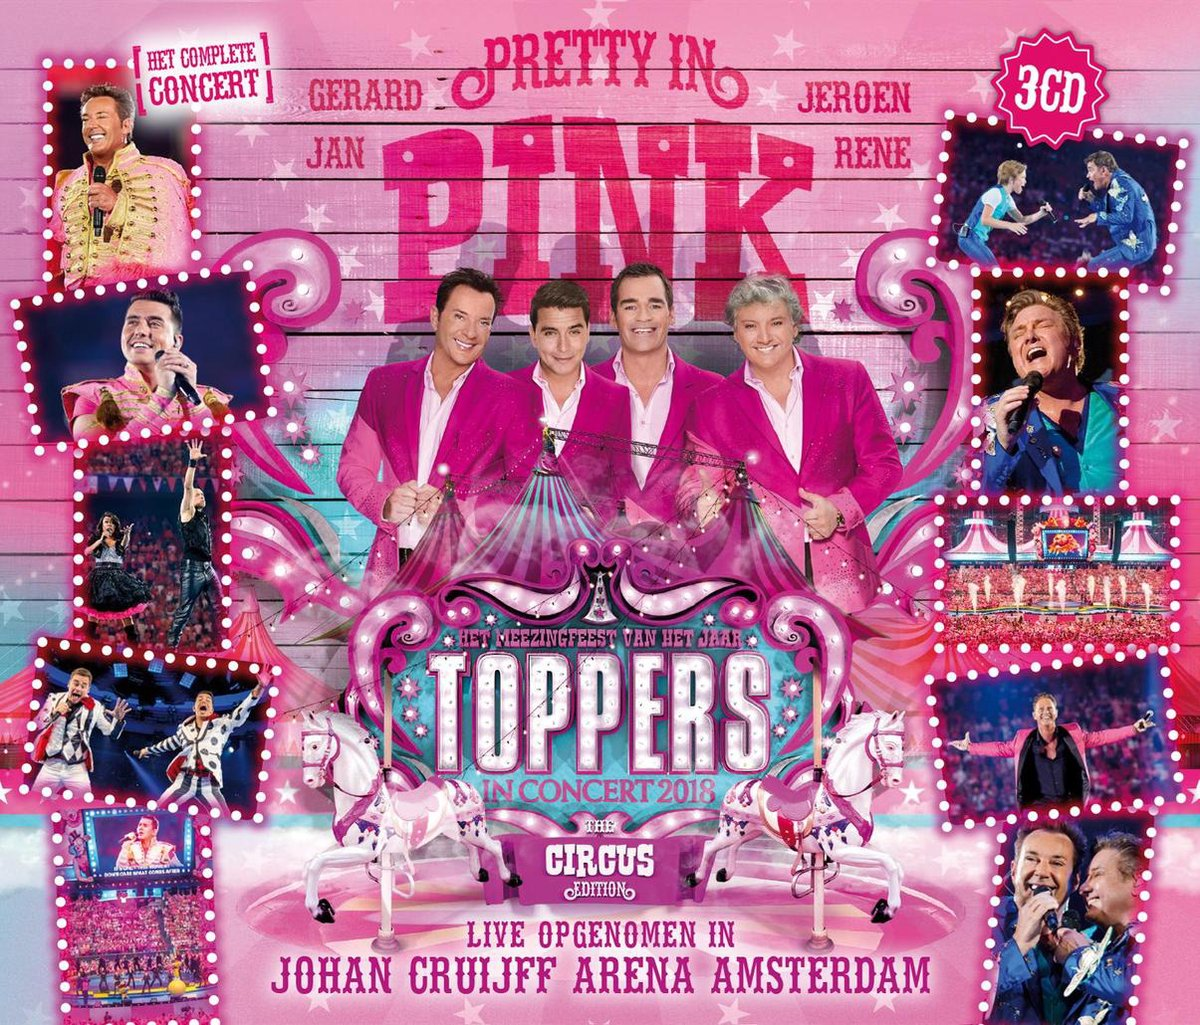 Toppers In Concert 2018 - Pretty In Pink - Toppers